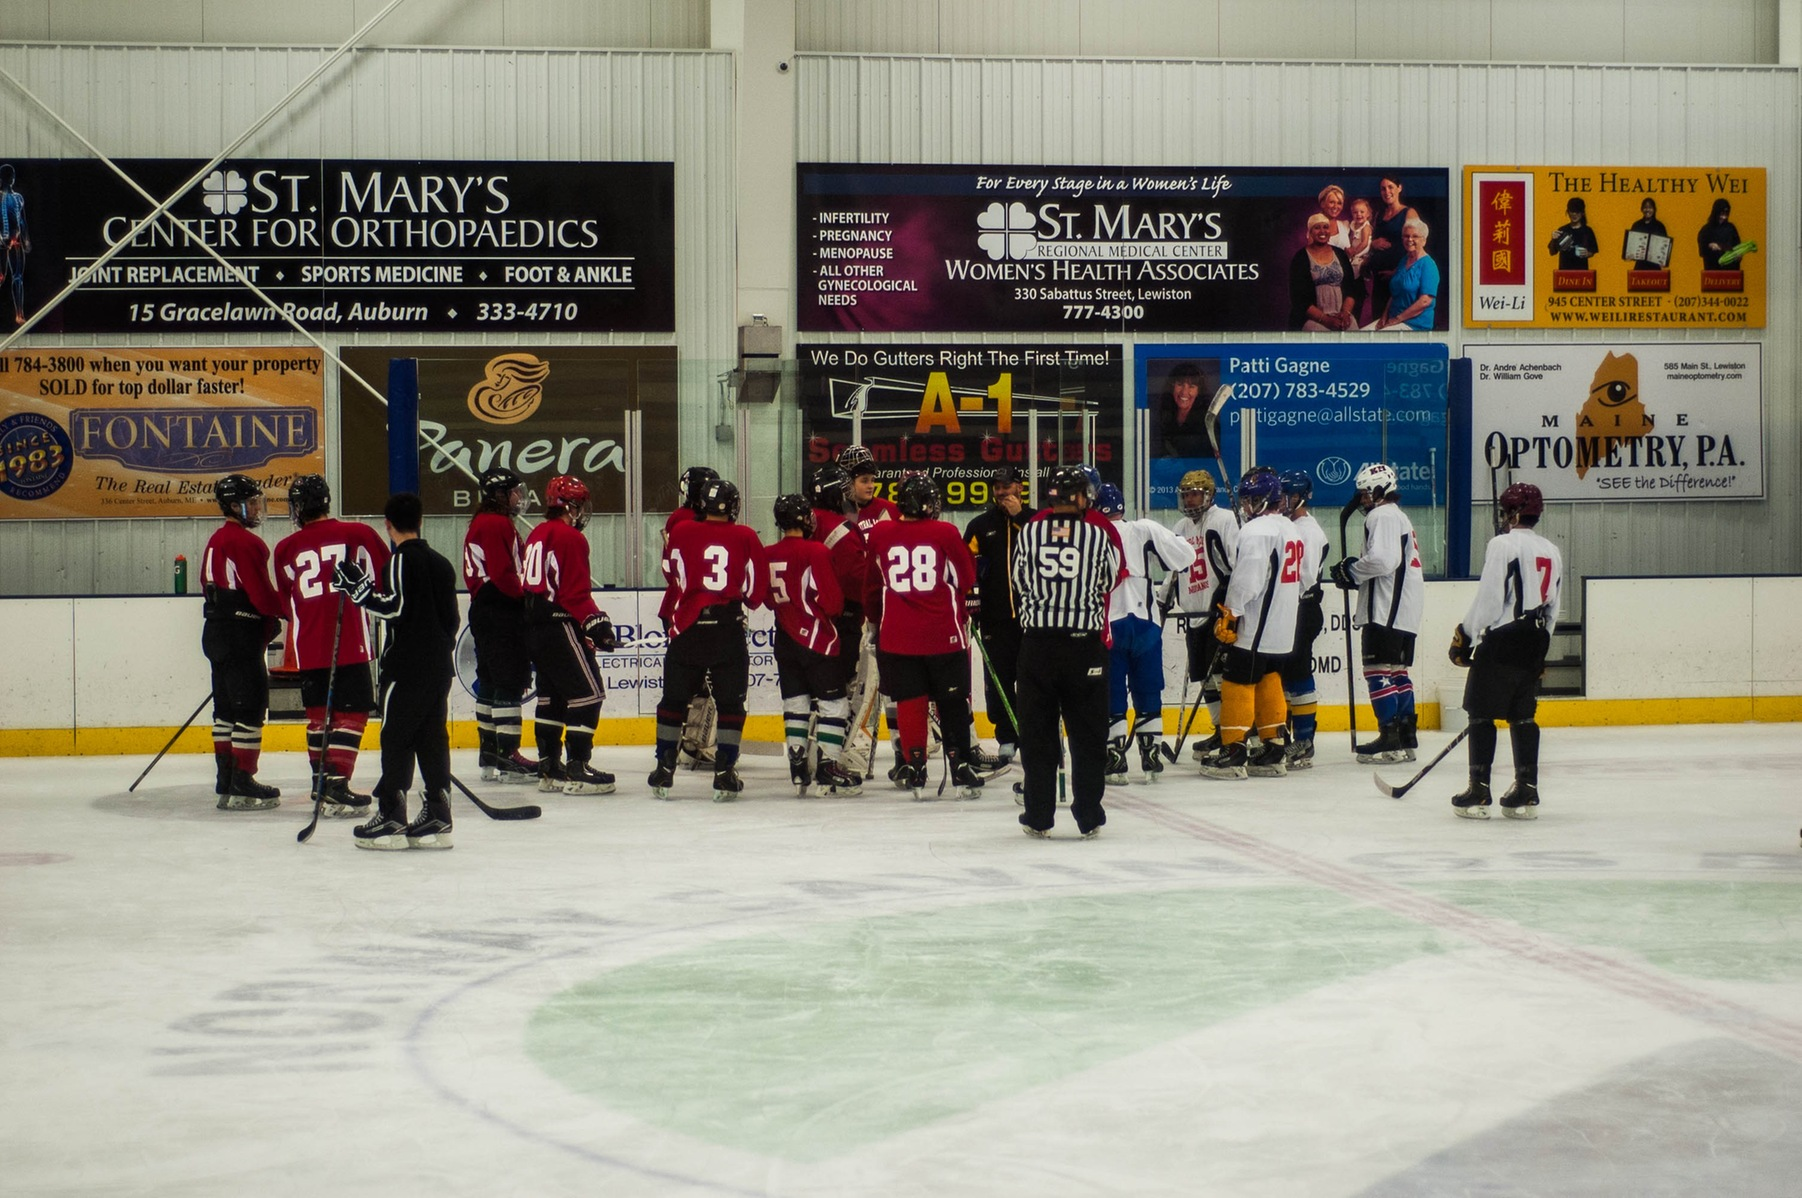 Mustangs Announce 4th Annual Prospect Skate Day